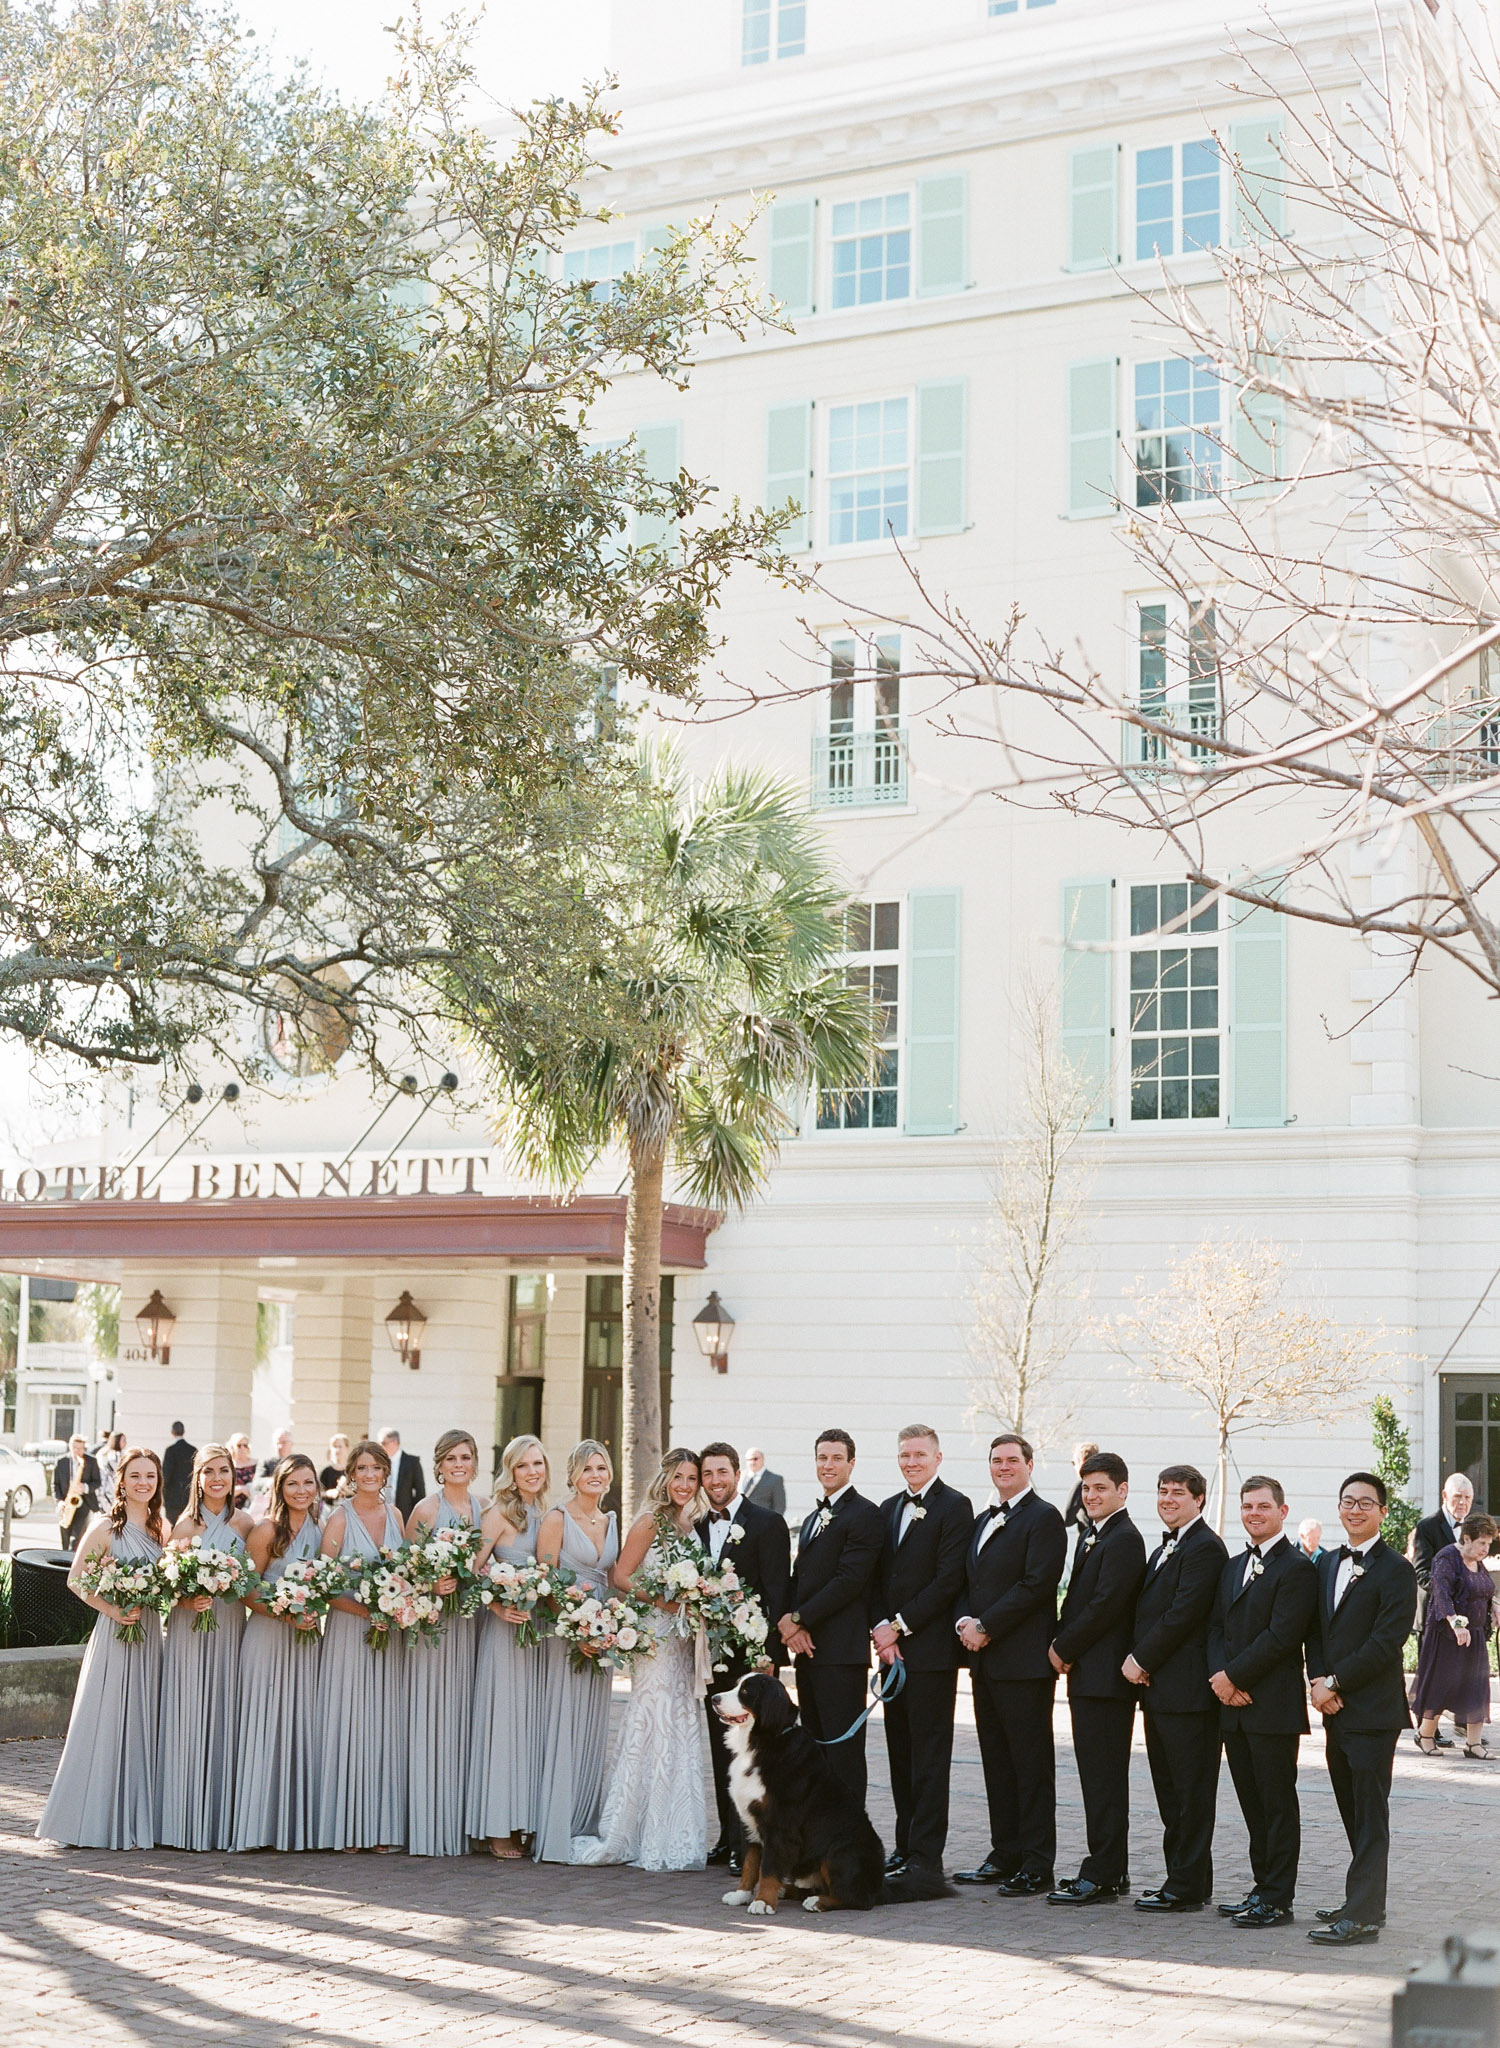 Charleston-Wedding-Hotel-Bennett-66.jpg